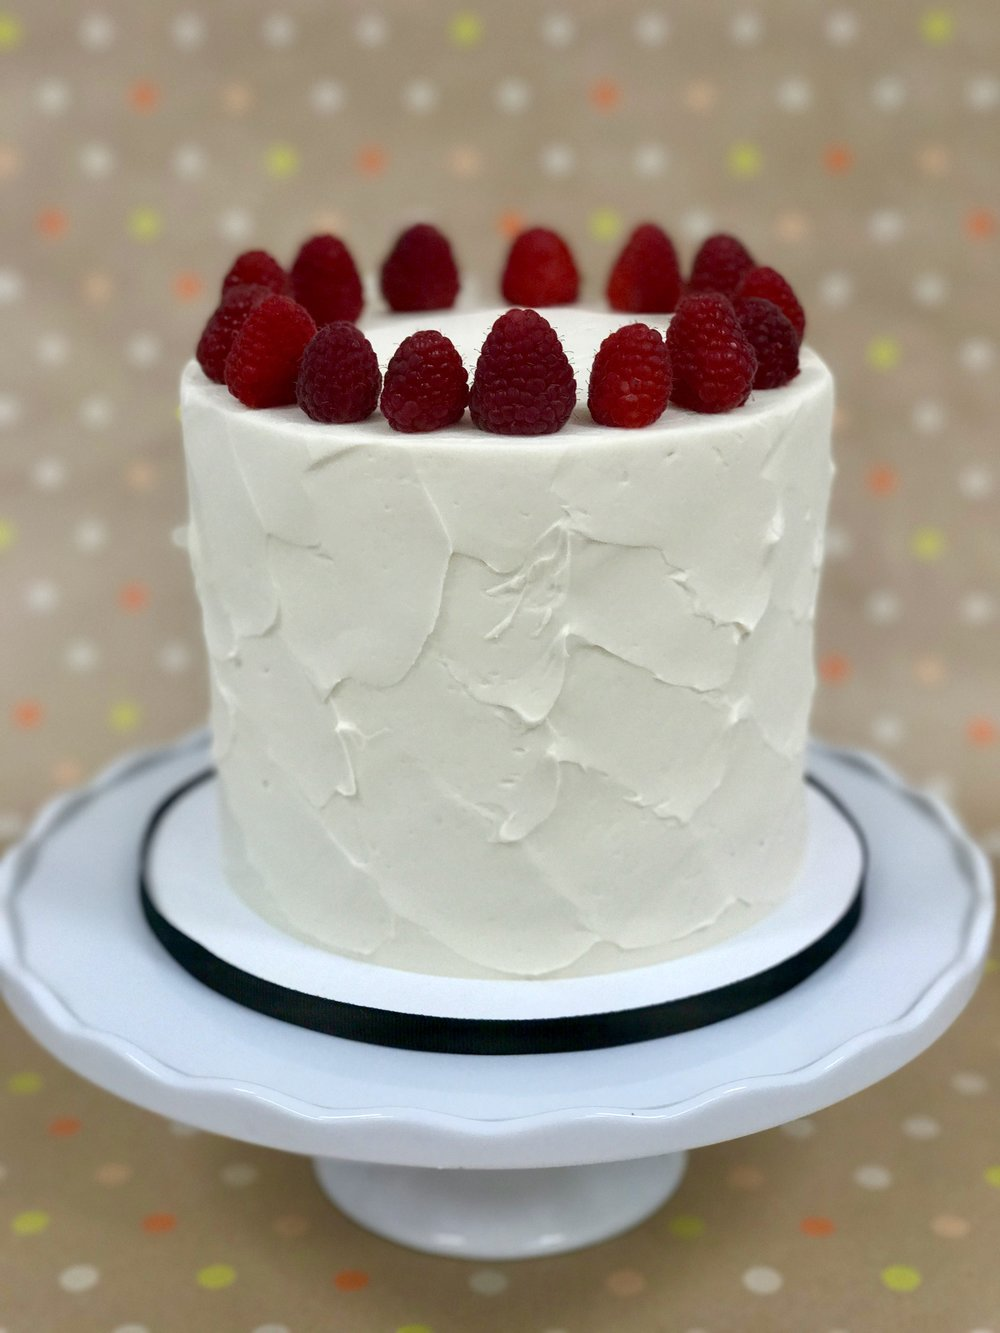 White Chocolate Raspberry - Cake: White ChocolateFilling: White Chocolate Raspberry Buttercream and Fresh RaspberriesFrosting: Vanilla Swiss Meringue Buttercream and Fresh Raspberries